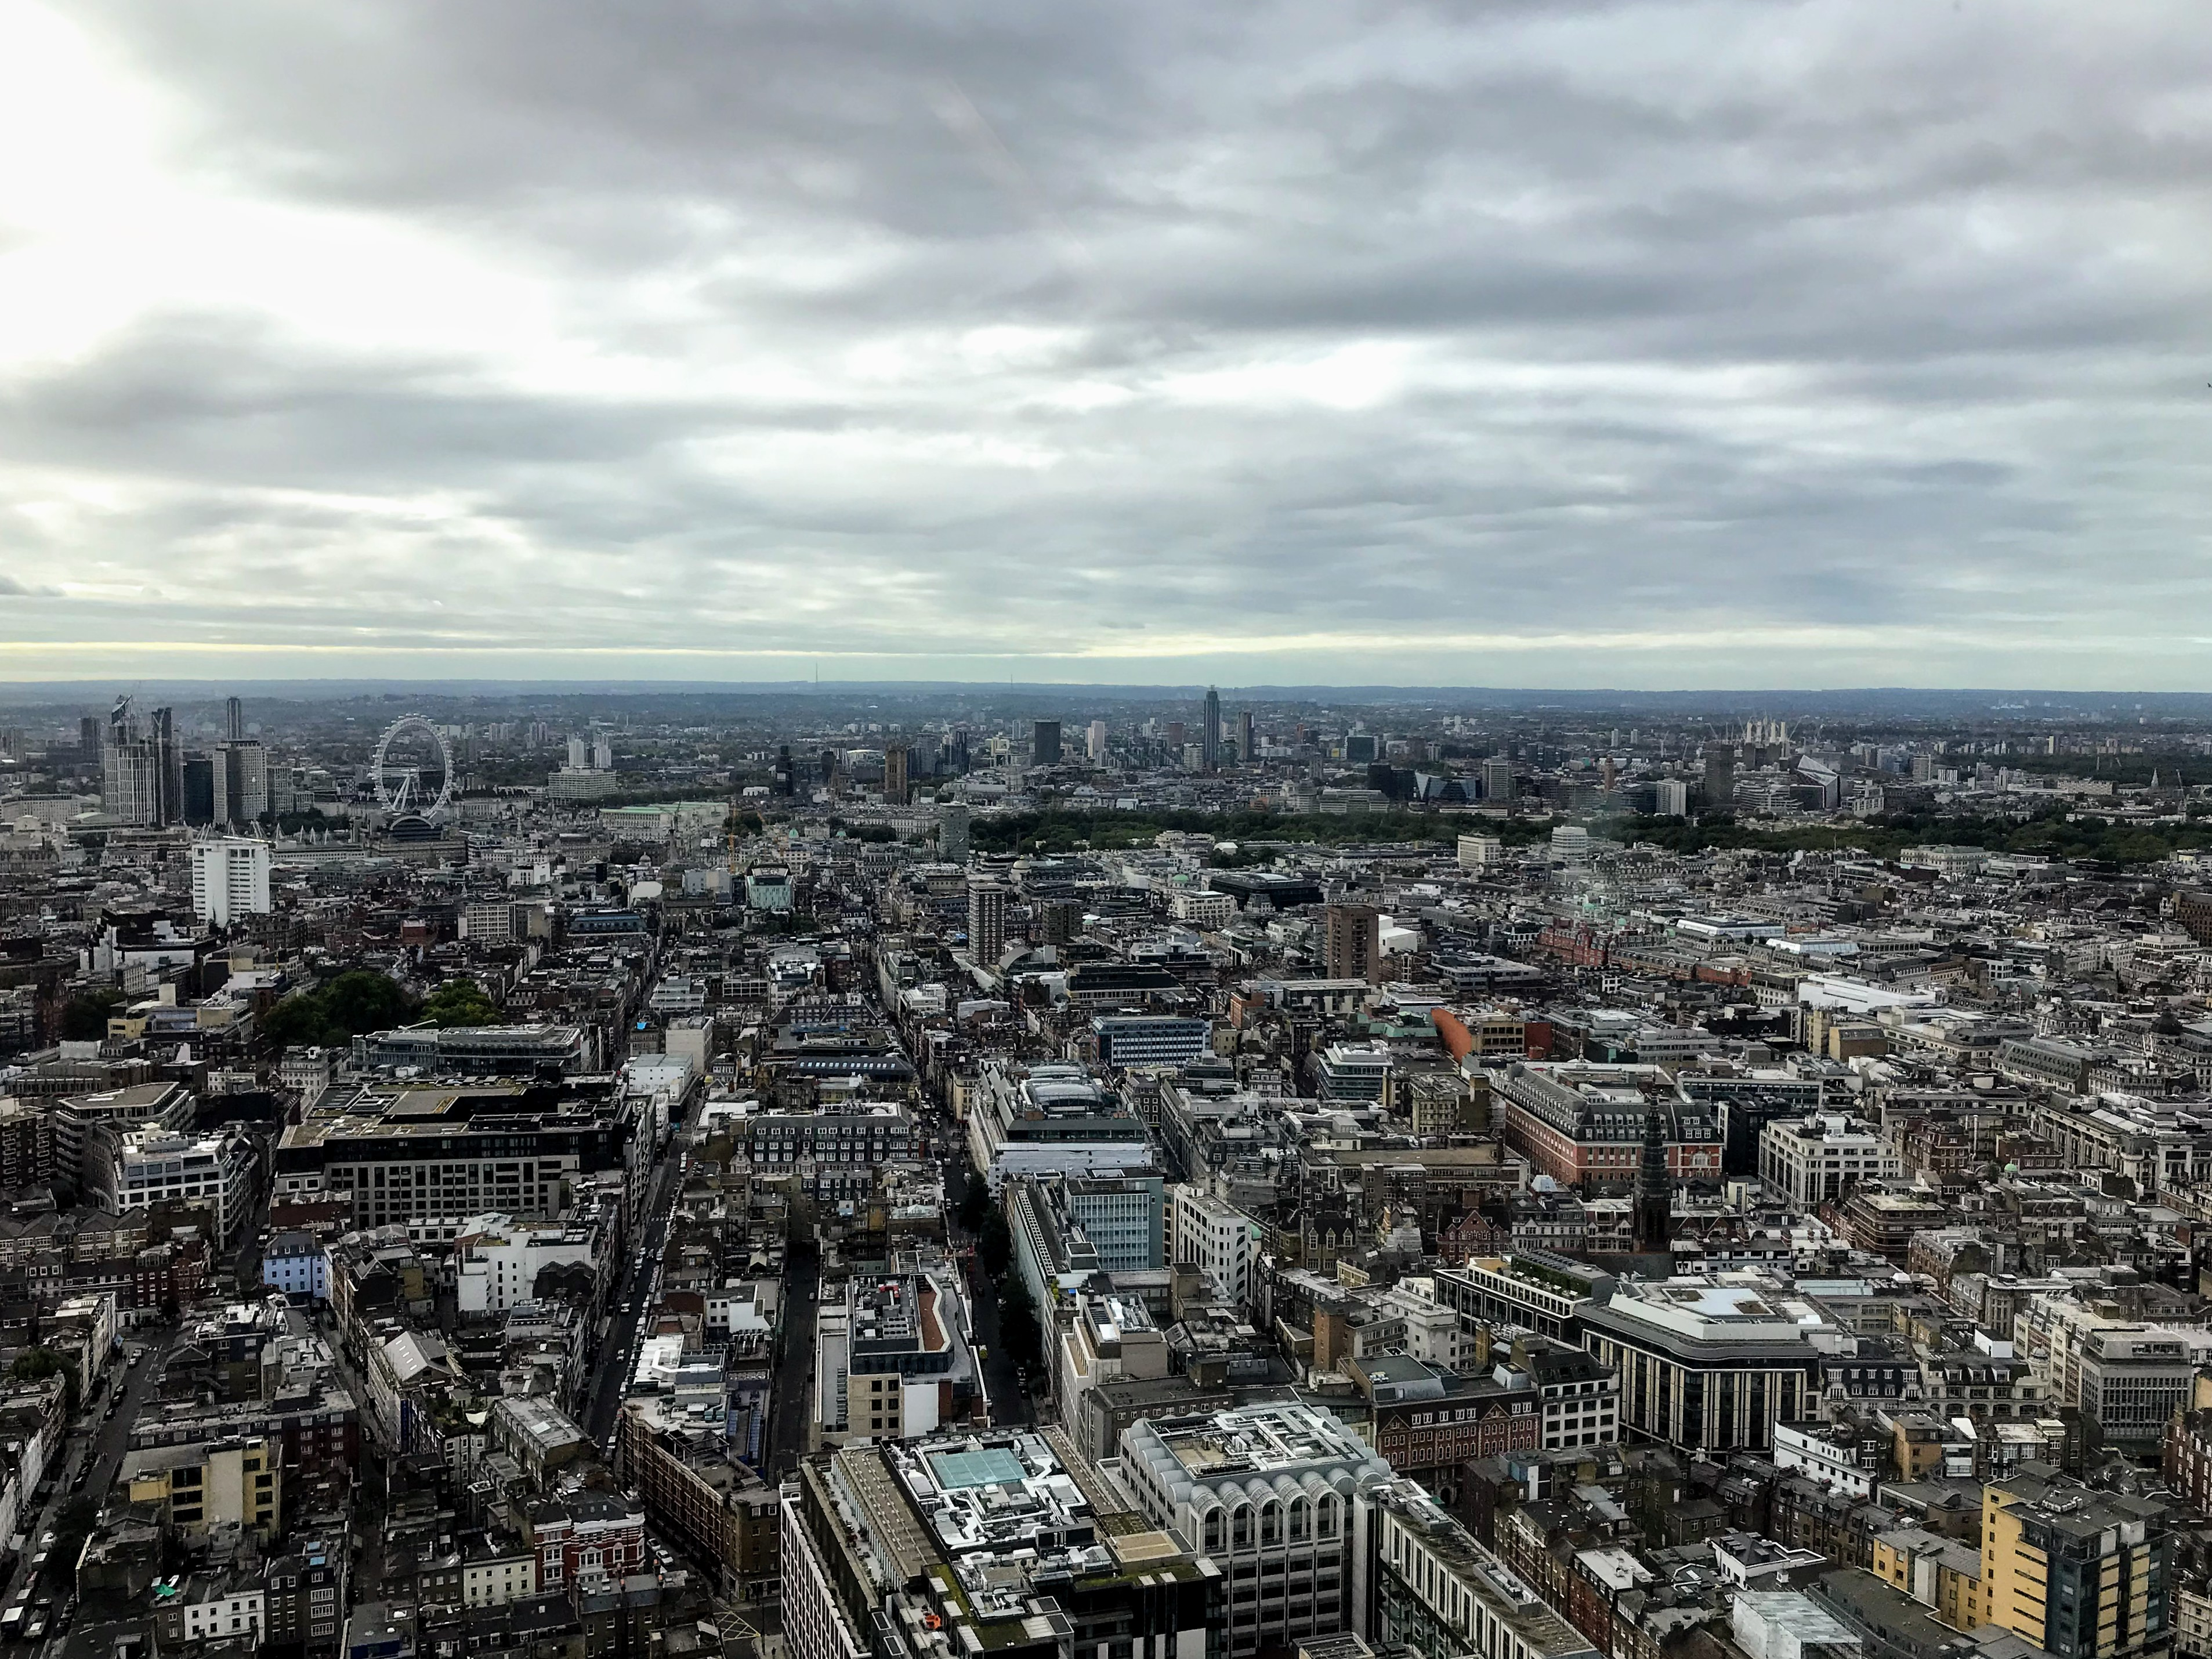 View from BT Tower